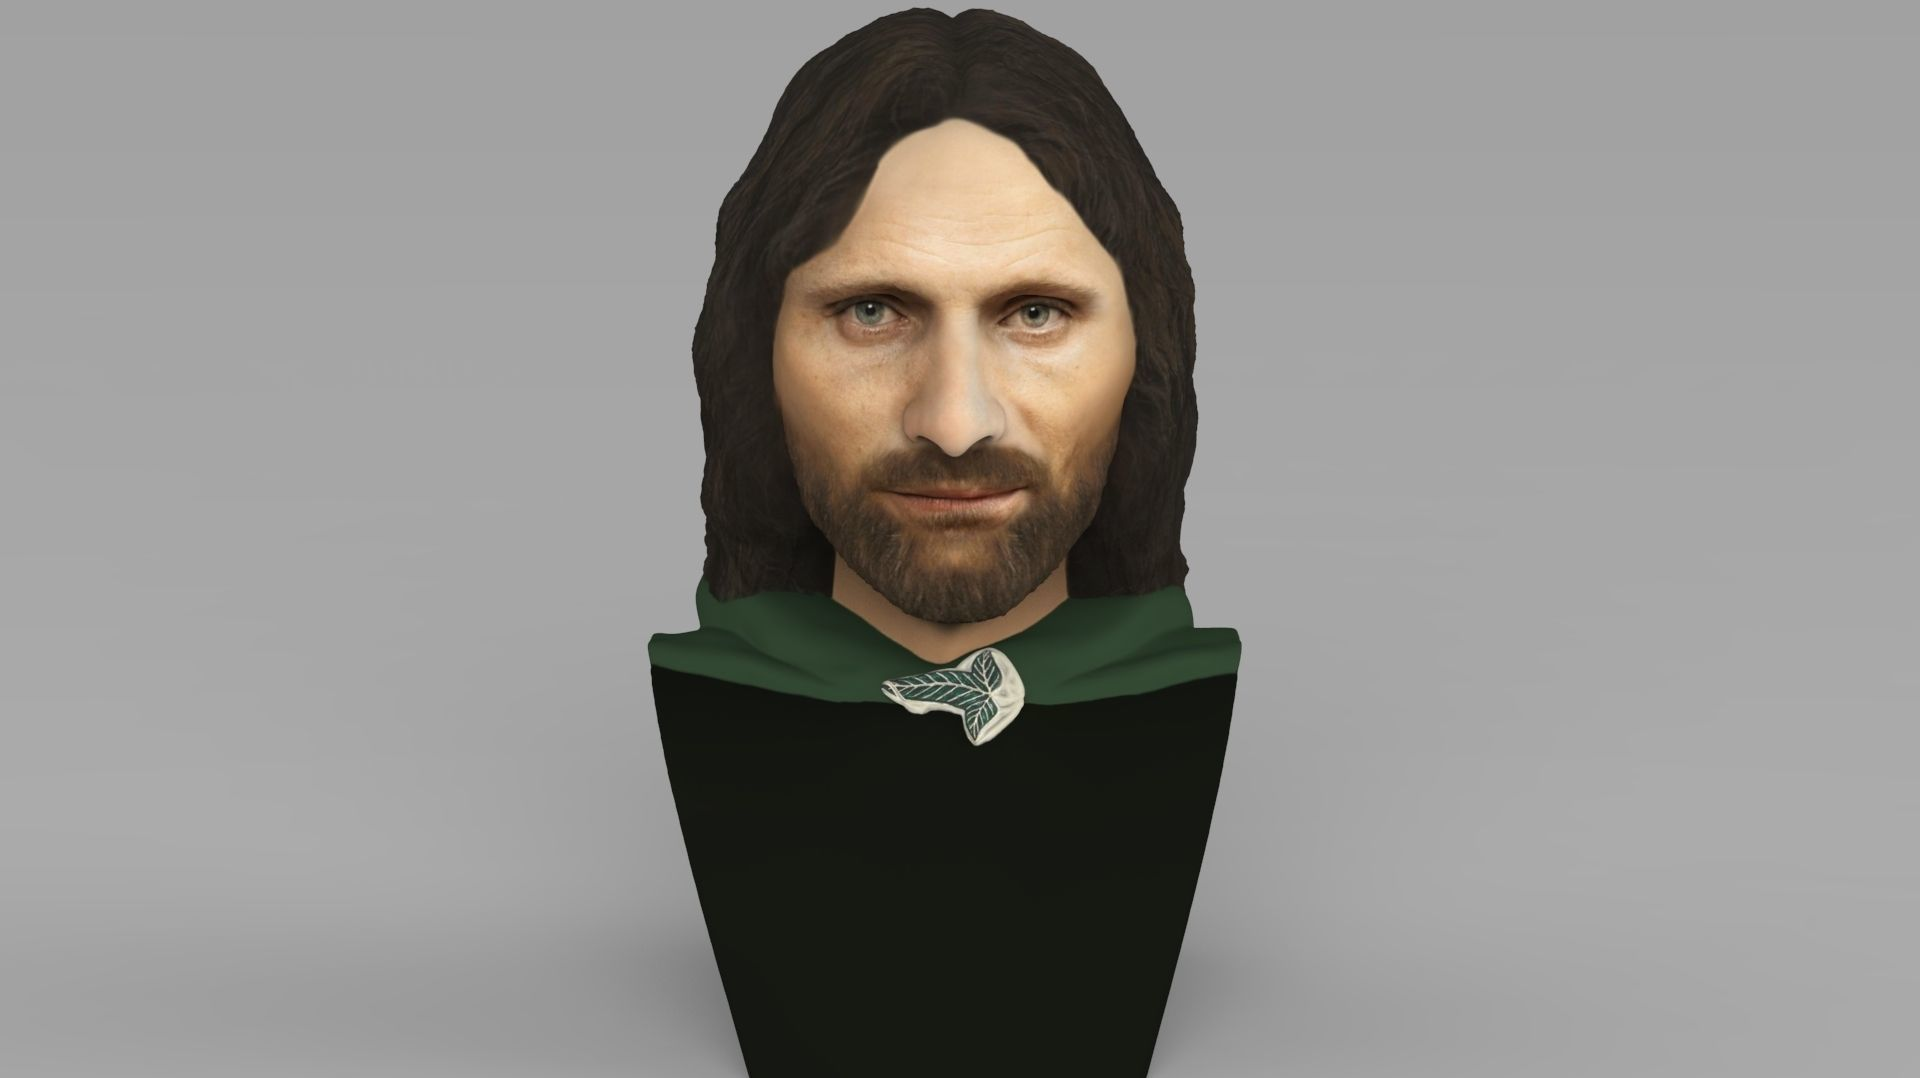 Aragorn bust Lord of the Rings ready for full color 3D printing